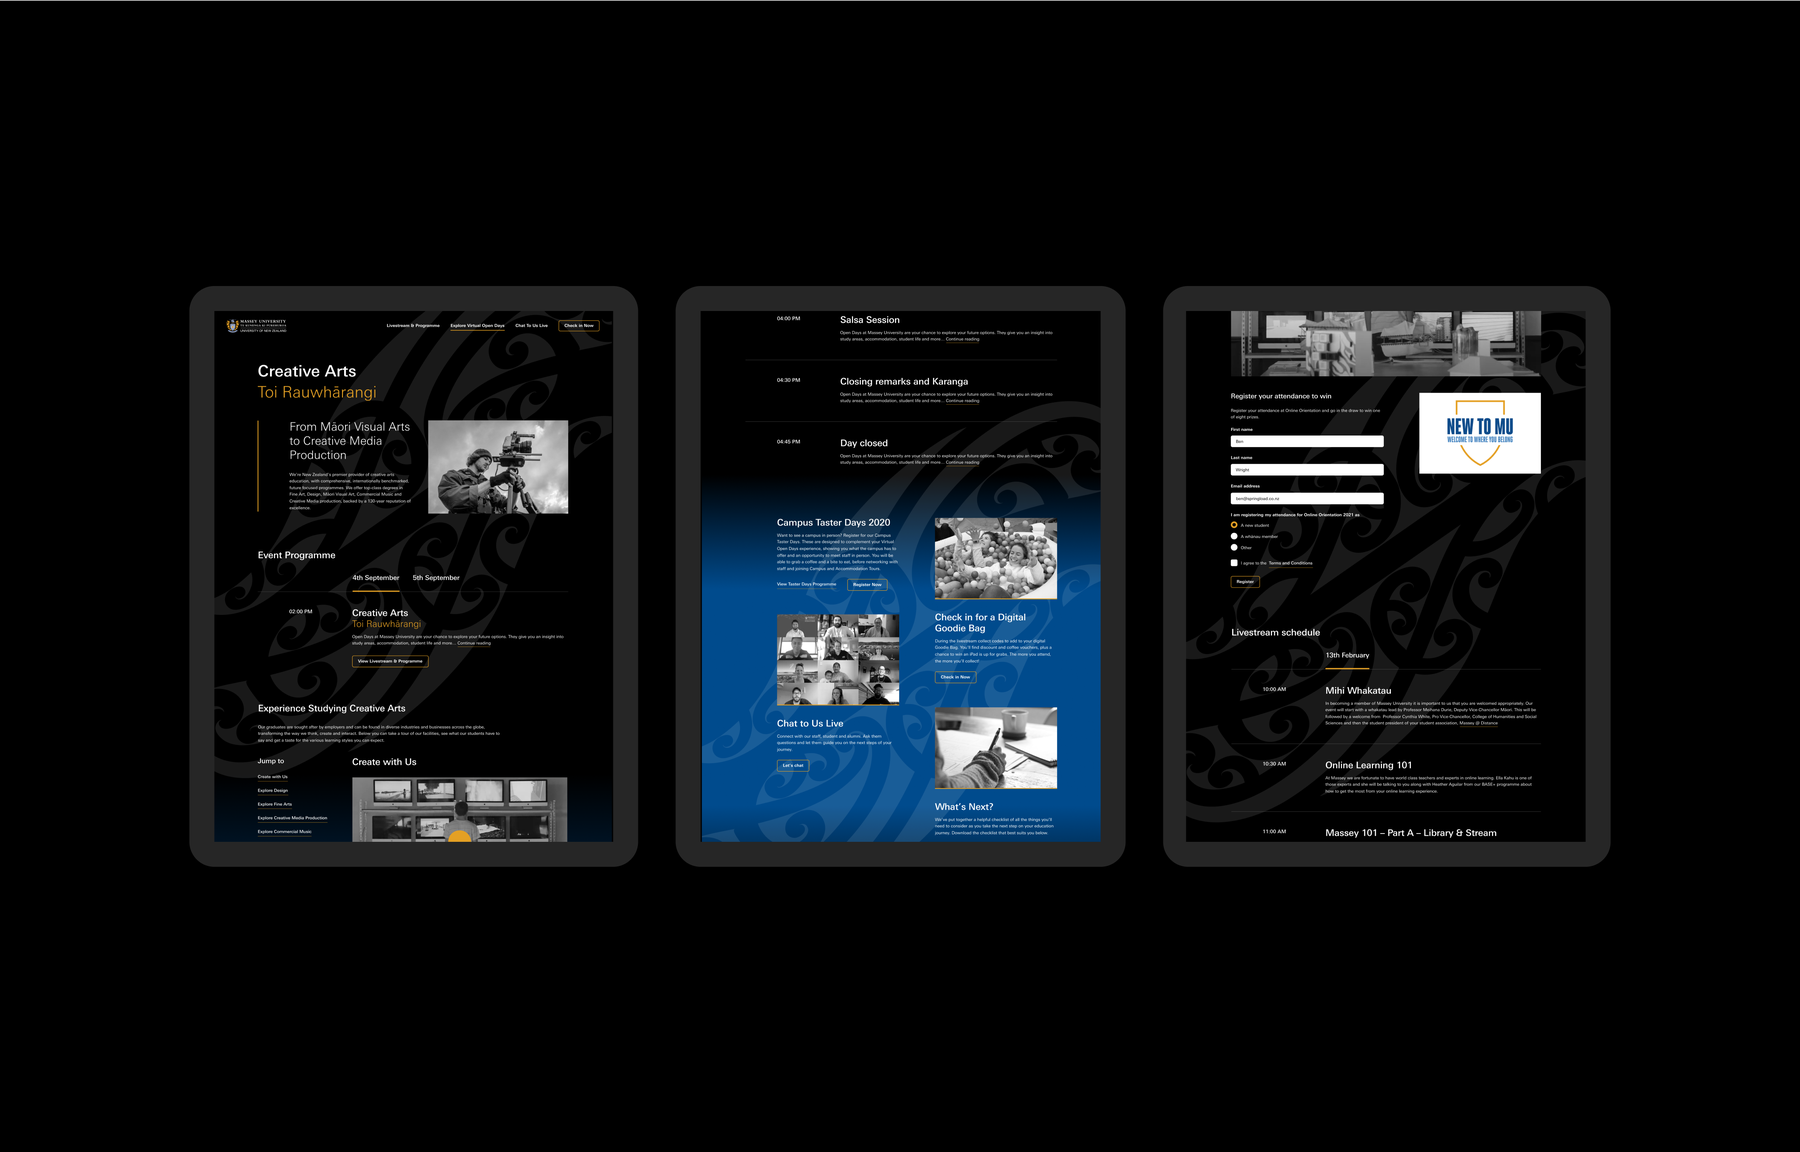 Massey Open Days tablet.png